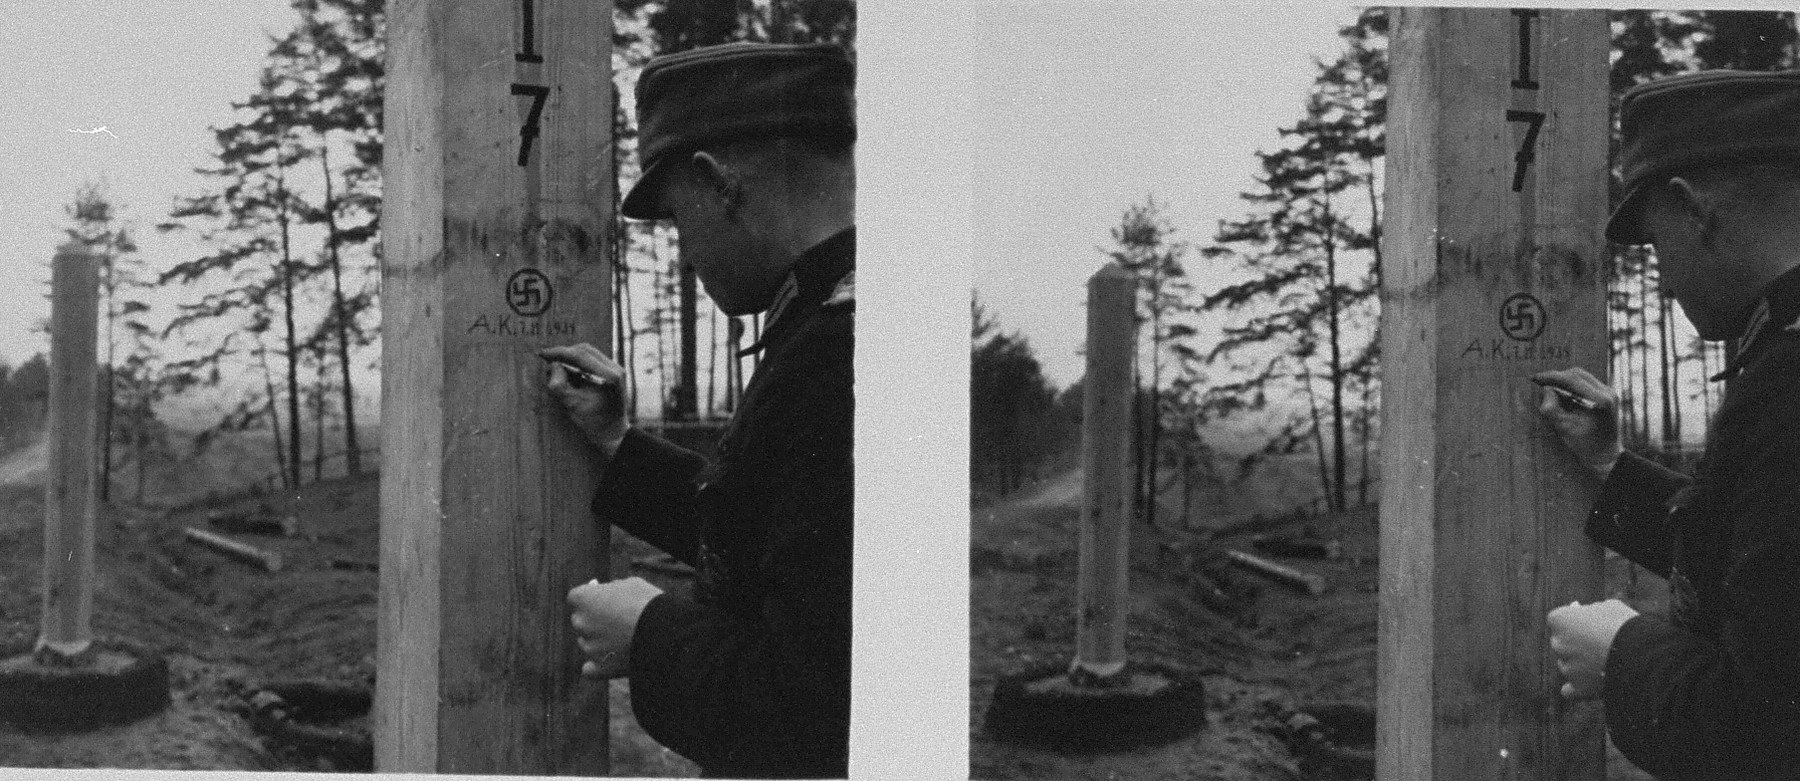 Stereoscopic photograph of a  German soldier carving his name into a pole marking the demarcation line between Soviet and German occupied Poland.